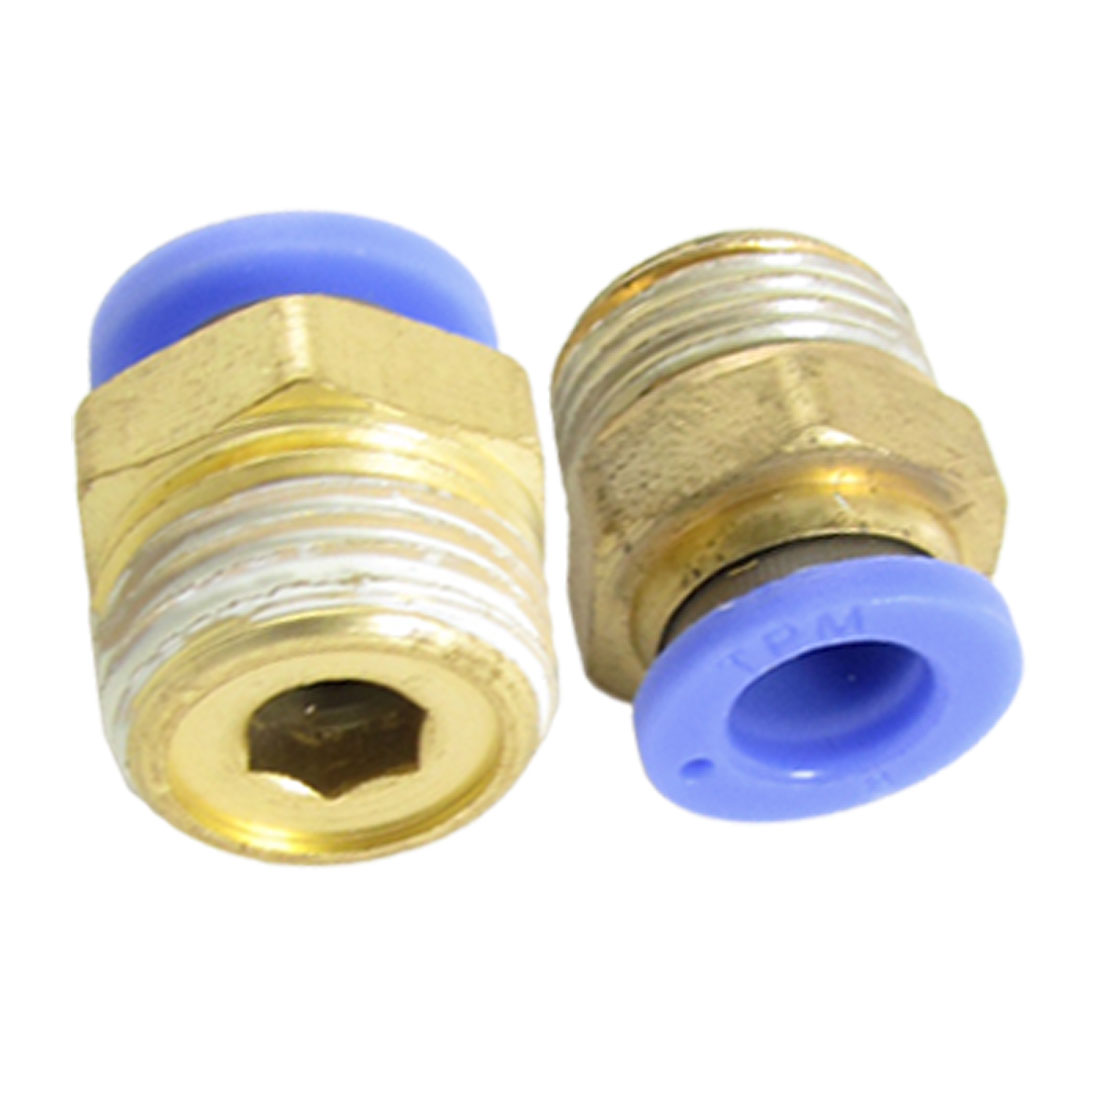 8mm x 16mm Push in One Touch Pneumatic Straight Fittings 2 Pcs